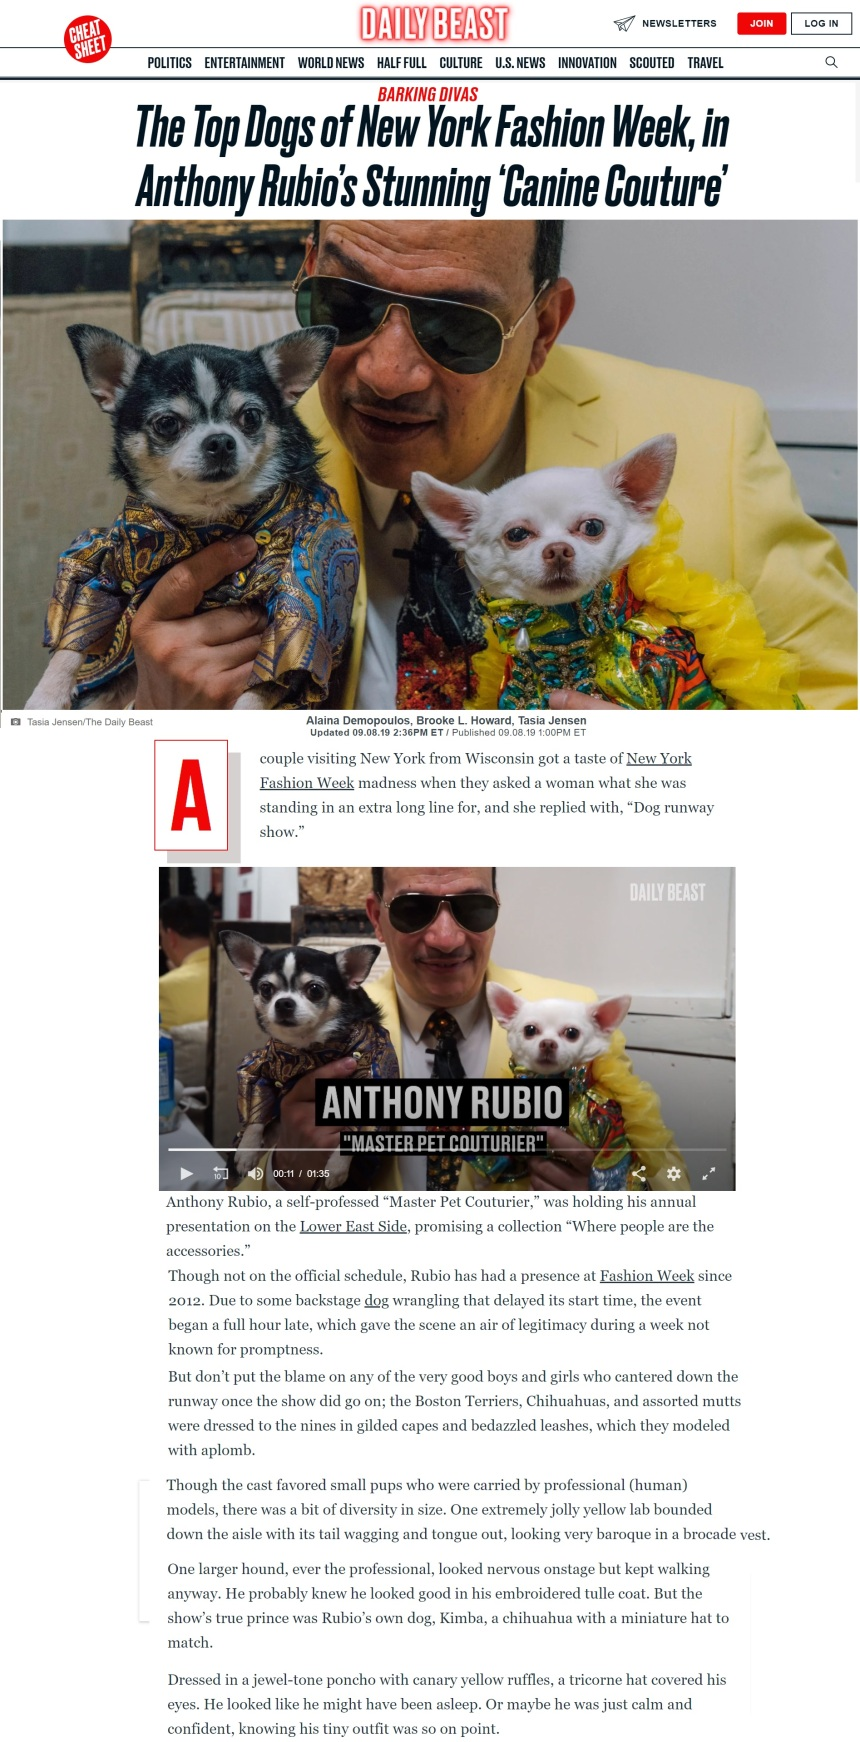 Anthony Rubio Designs Spring/Summer 2020 New York Fashion Week show featured in The Daily Beast